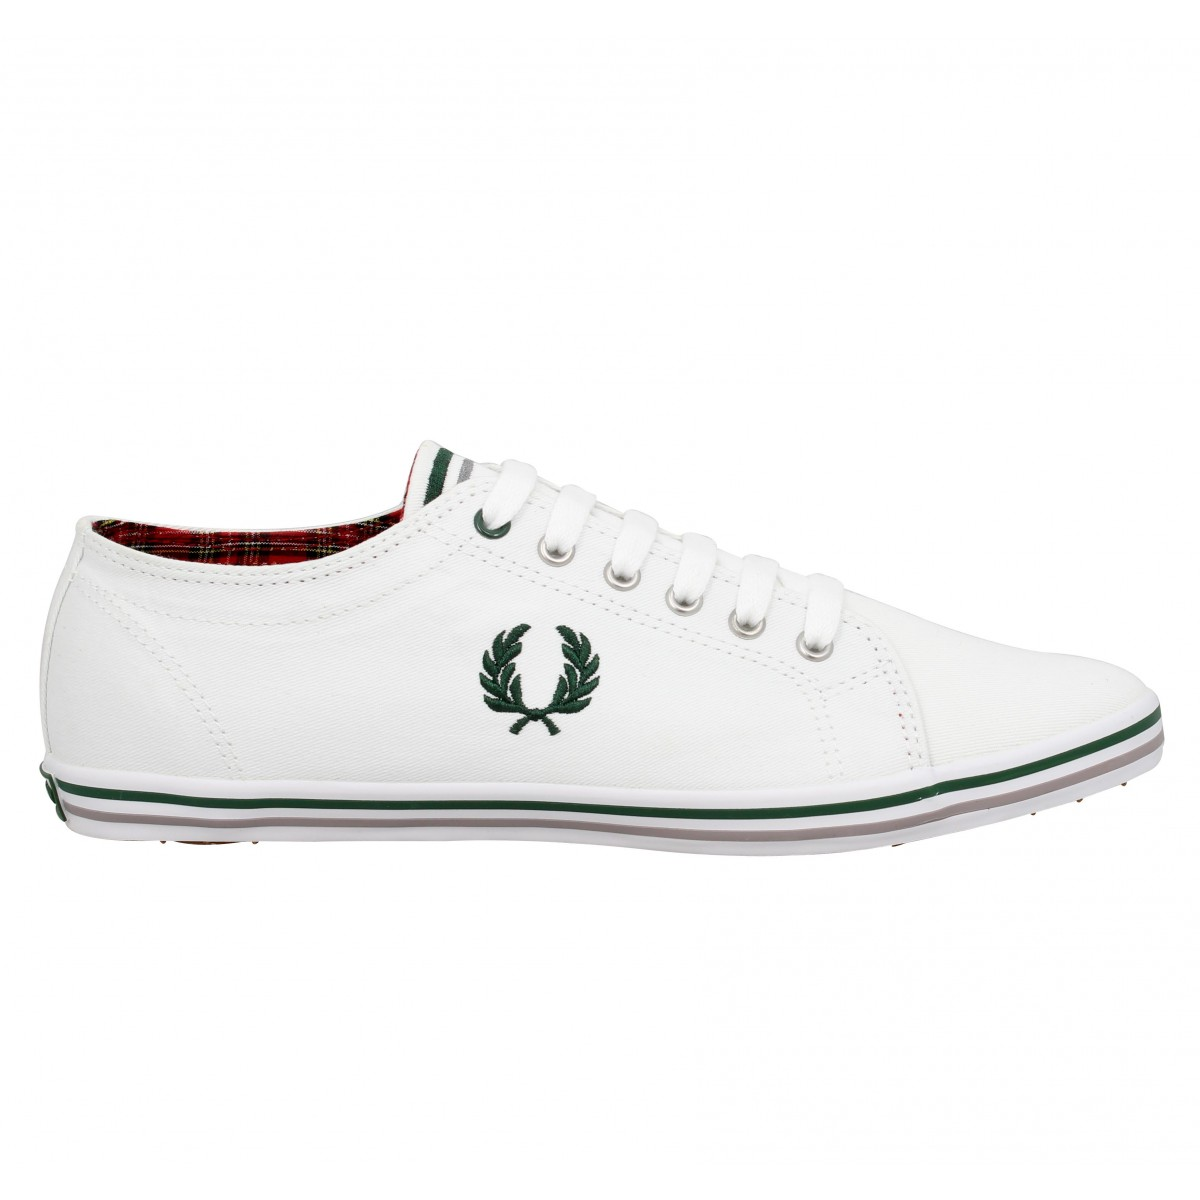 fred perry kingston toile homme blanc vert fanny chaussures. Black Bedroom Furniture Sets. Home Design Ideas